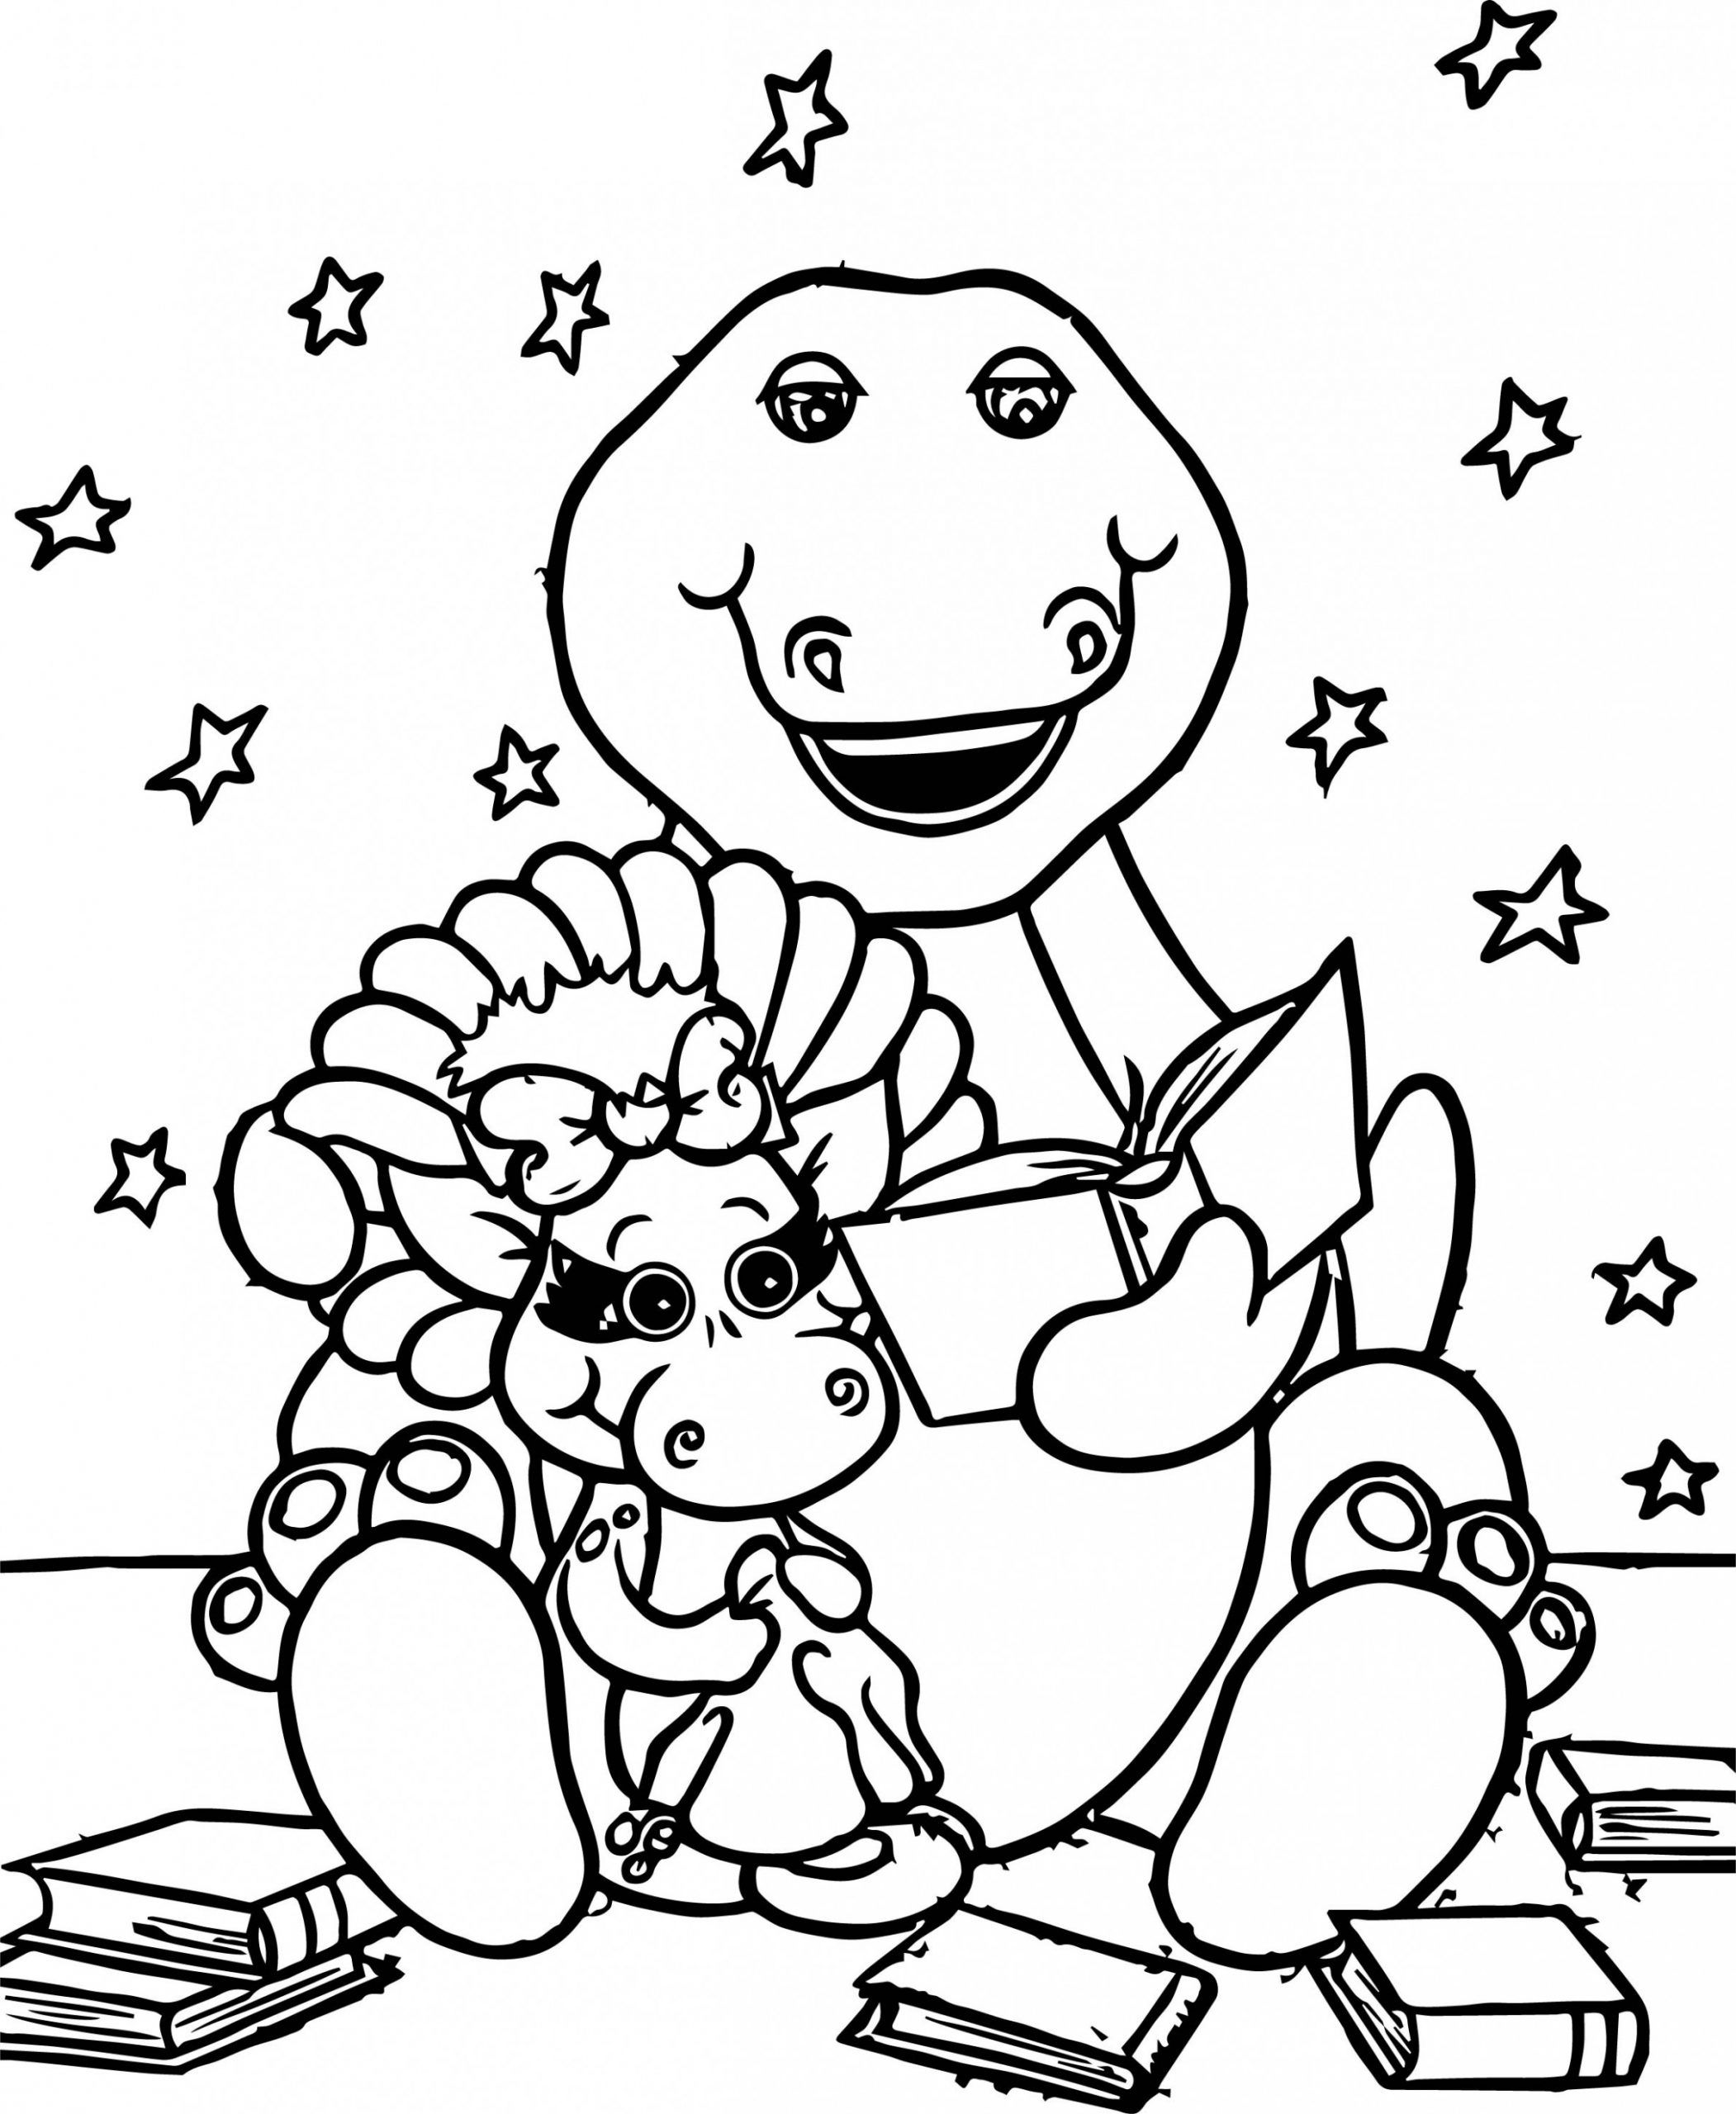 Barney Youtube Coloring Pages Printable Free Disney Online And In 2021 Cartoon Coloring Pages Printable Coloring Pages Coloring Pages